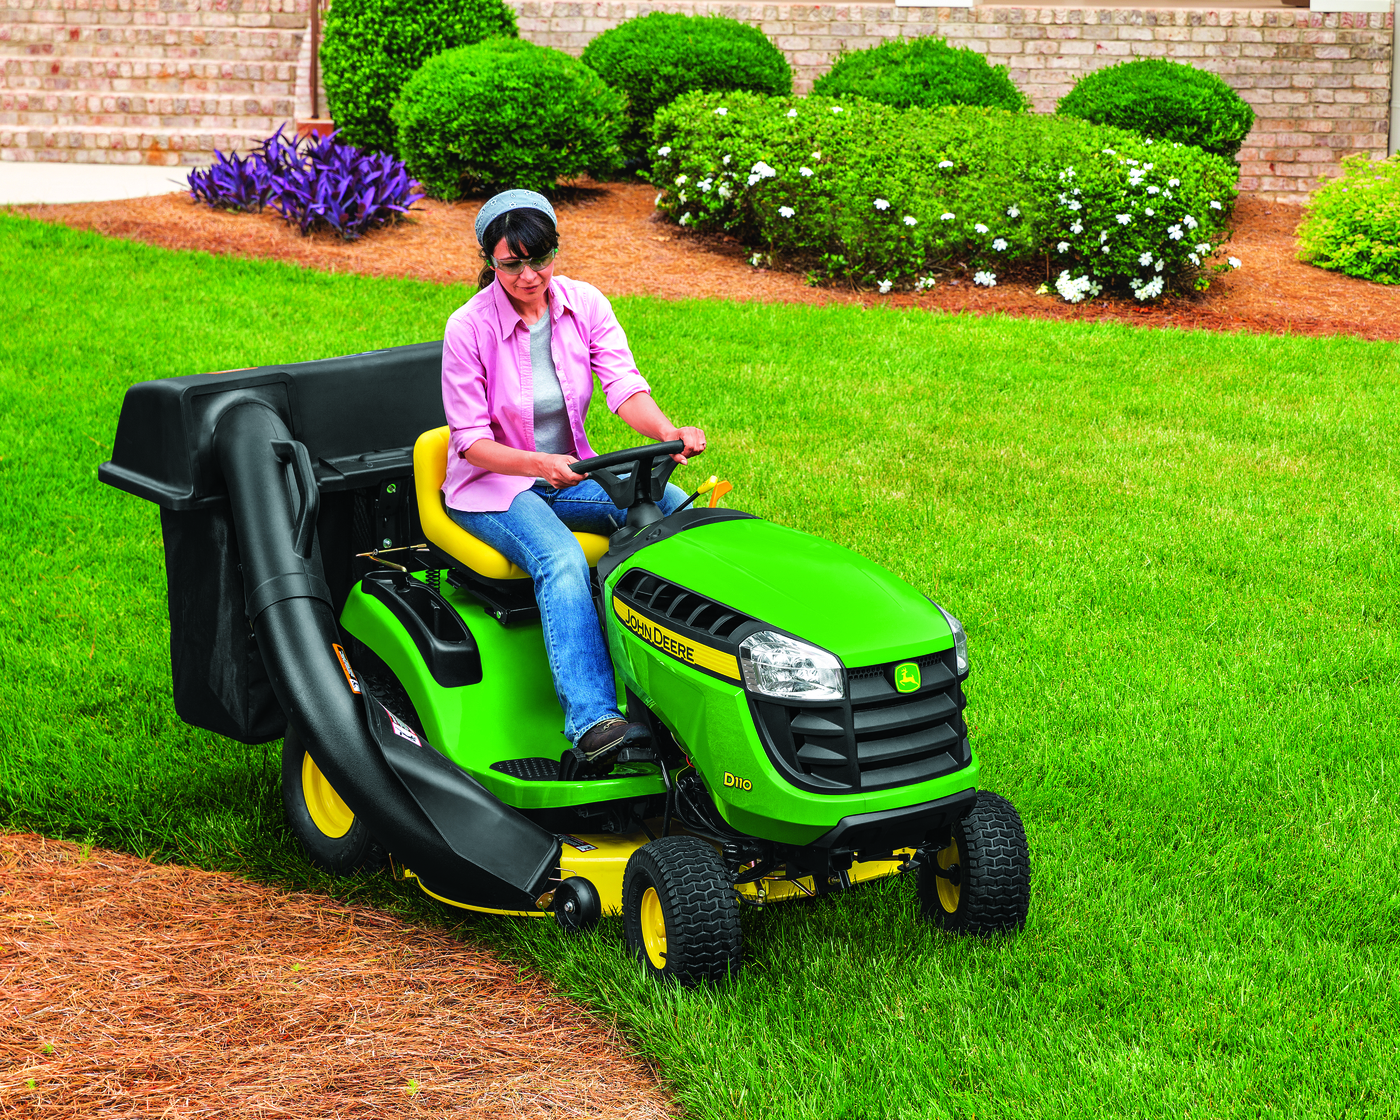 Woman Riding John Deere D110 Lawn Tactor